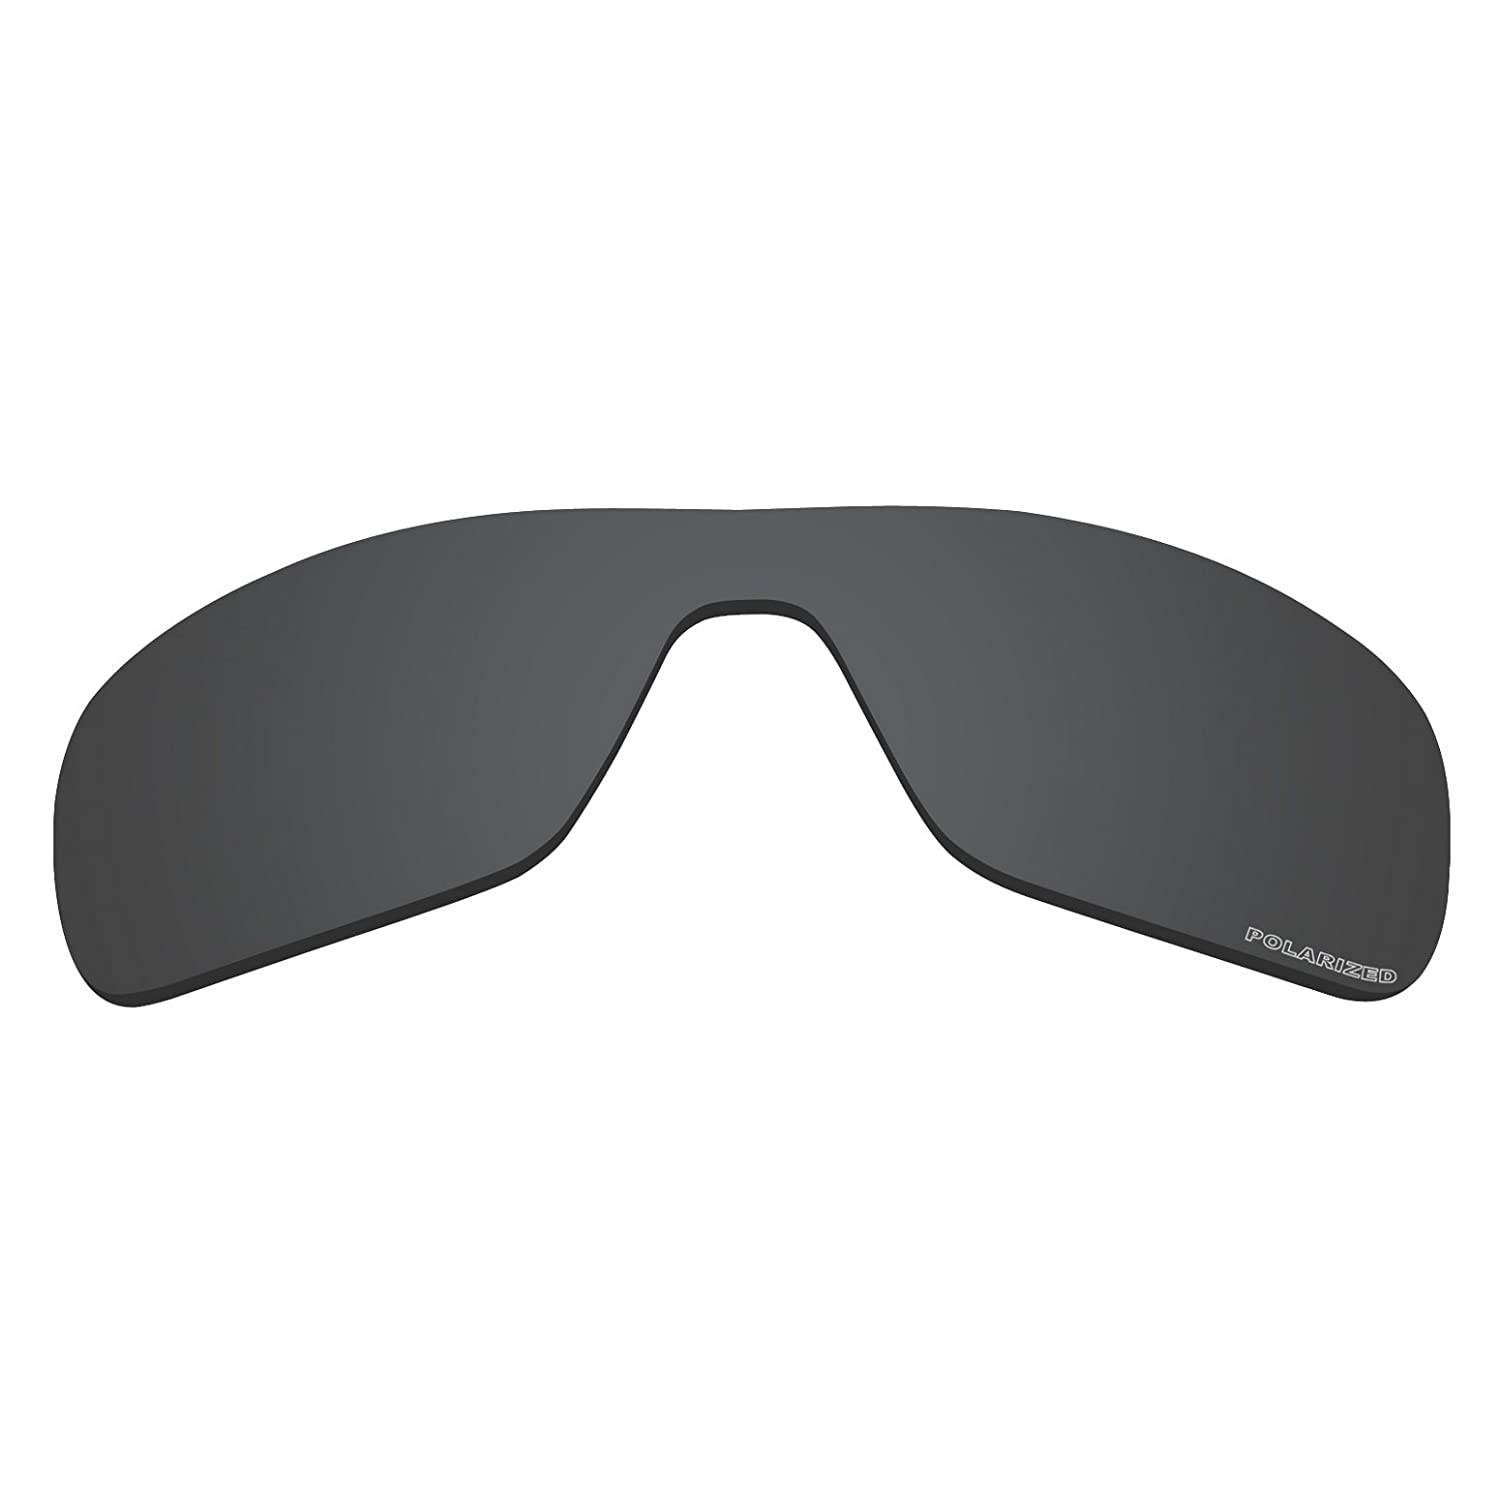 732db73126 Amazon.com  Tintart Performance Lenses Compatible with Oakley Turbine Rotor  Polarized Etched-Carbon Black  Clothing